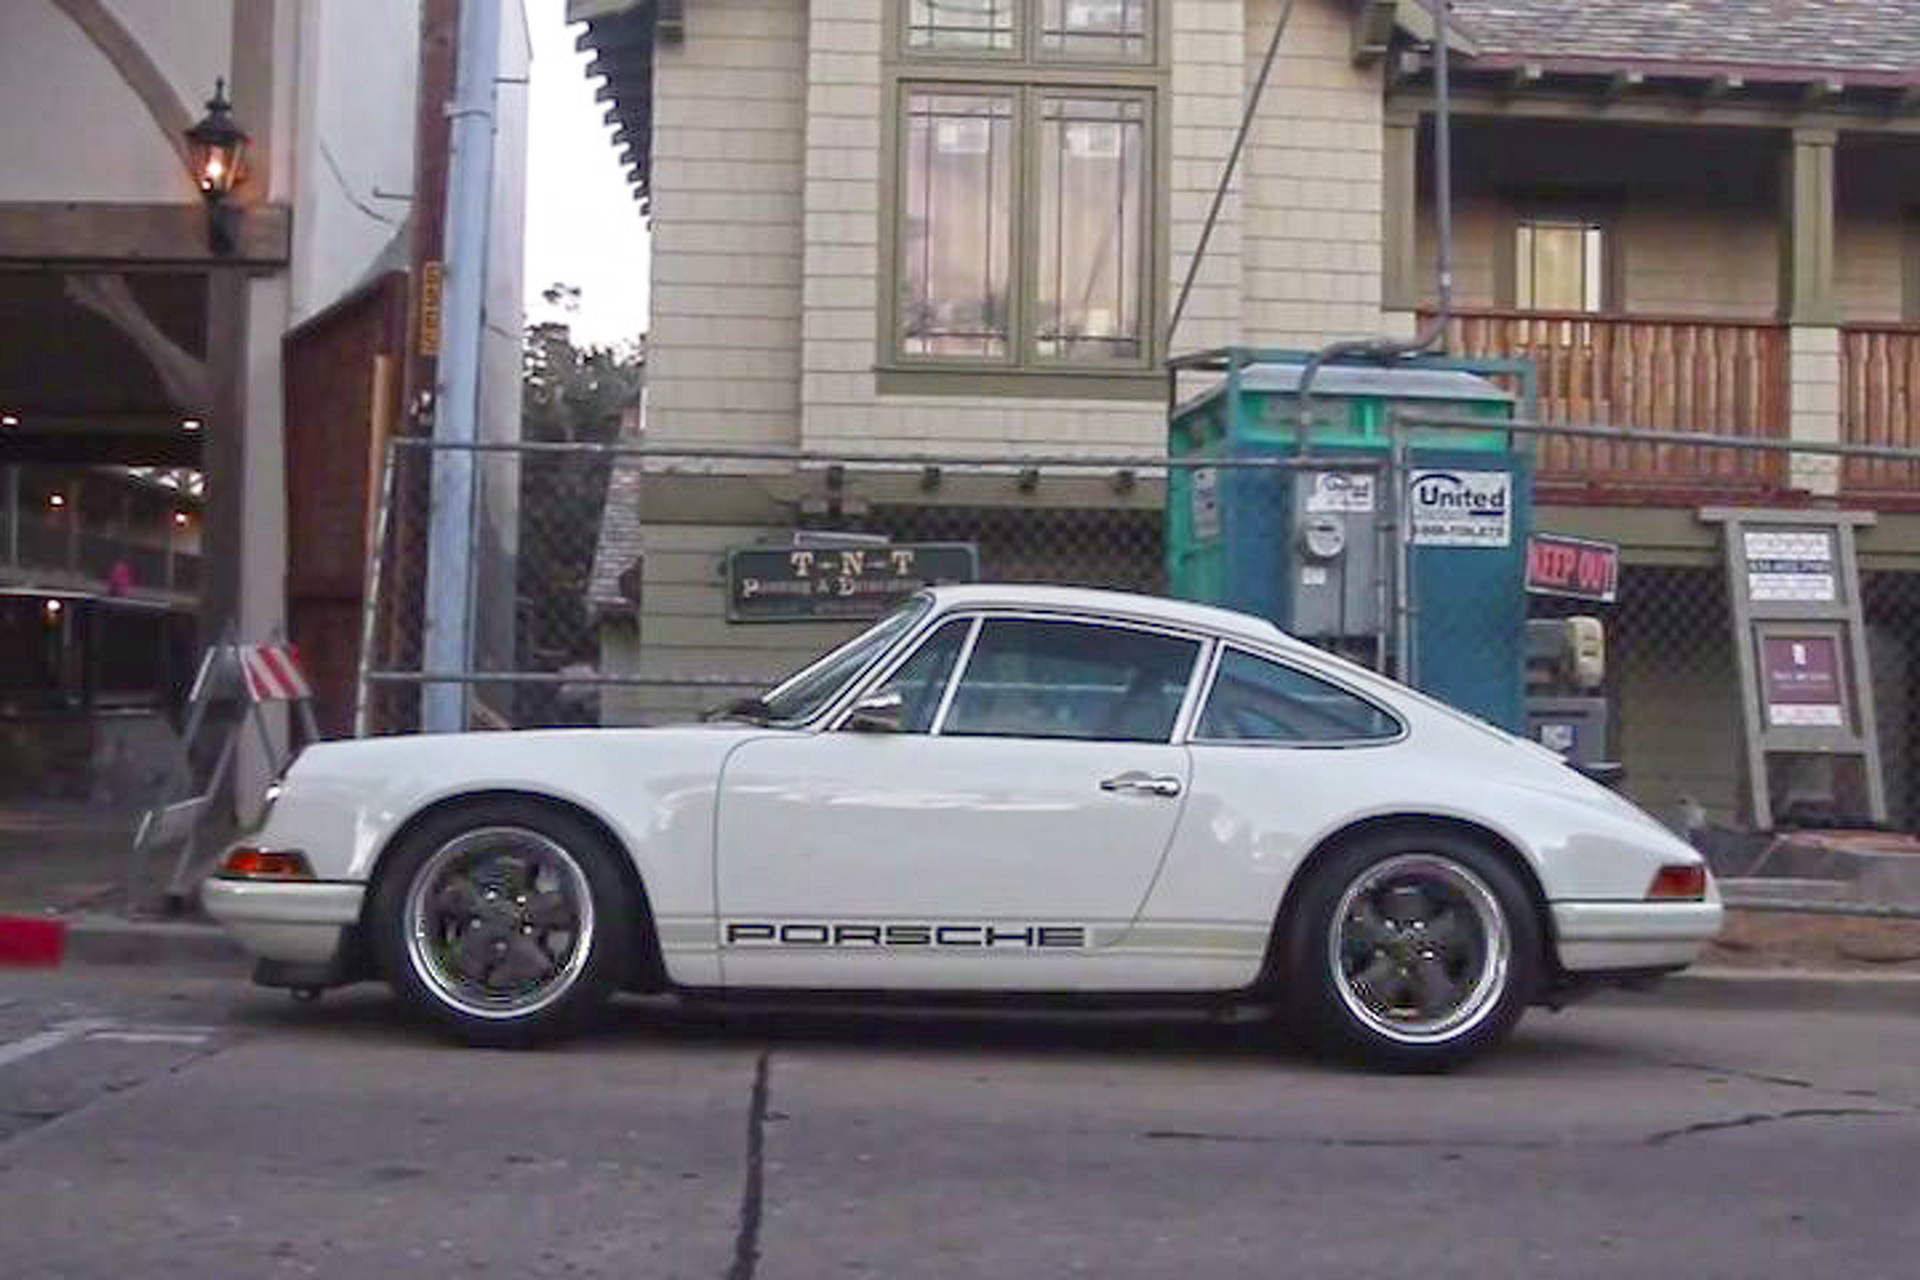 Get a Closer Look at the Porsche 911 Nebraska by Singer